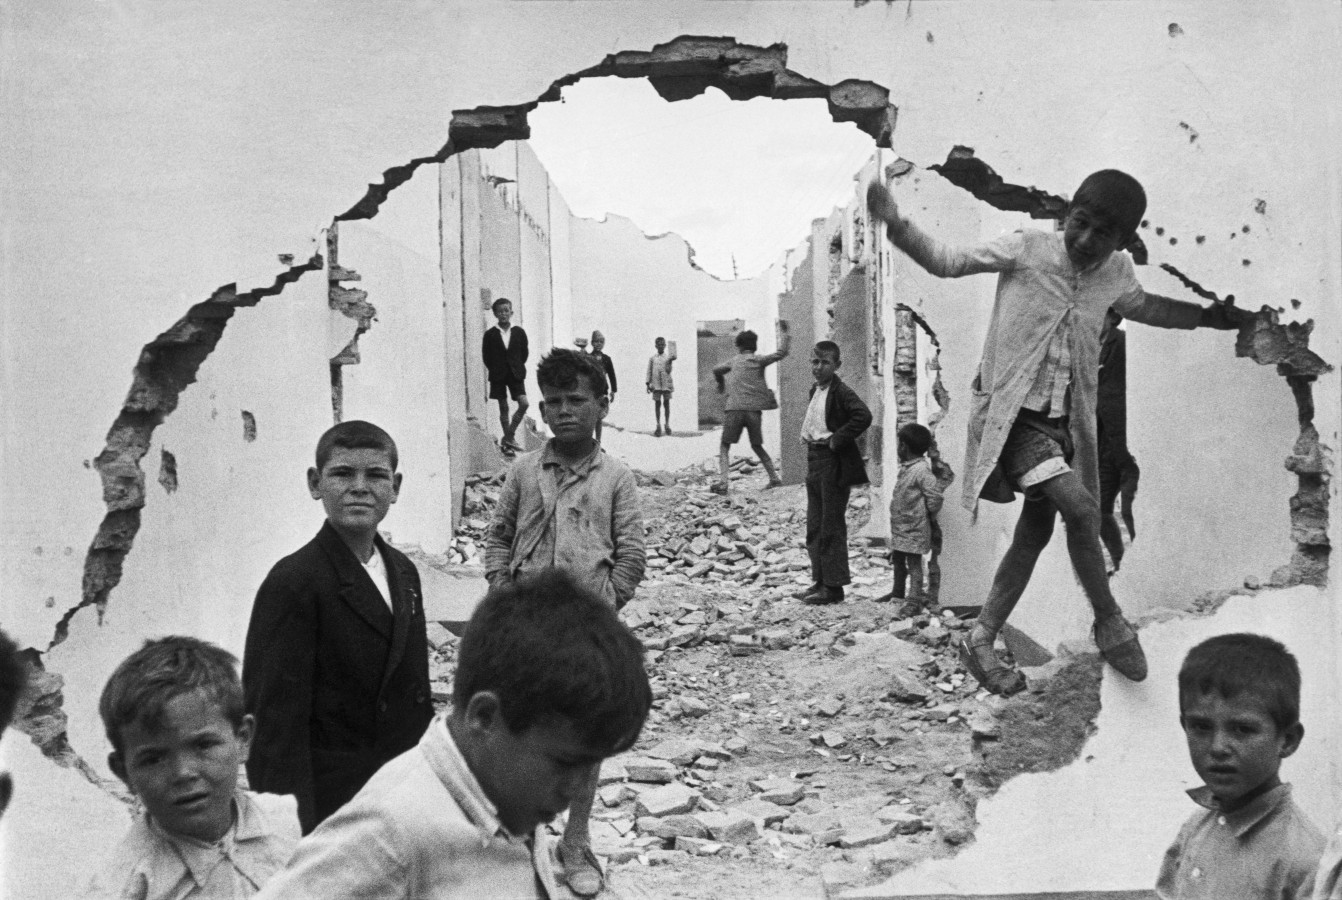 Children in Seville Henri Cartier-Bresson Севилья Анри Картье-Брессон